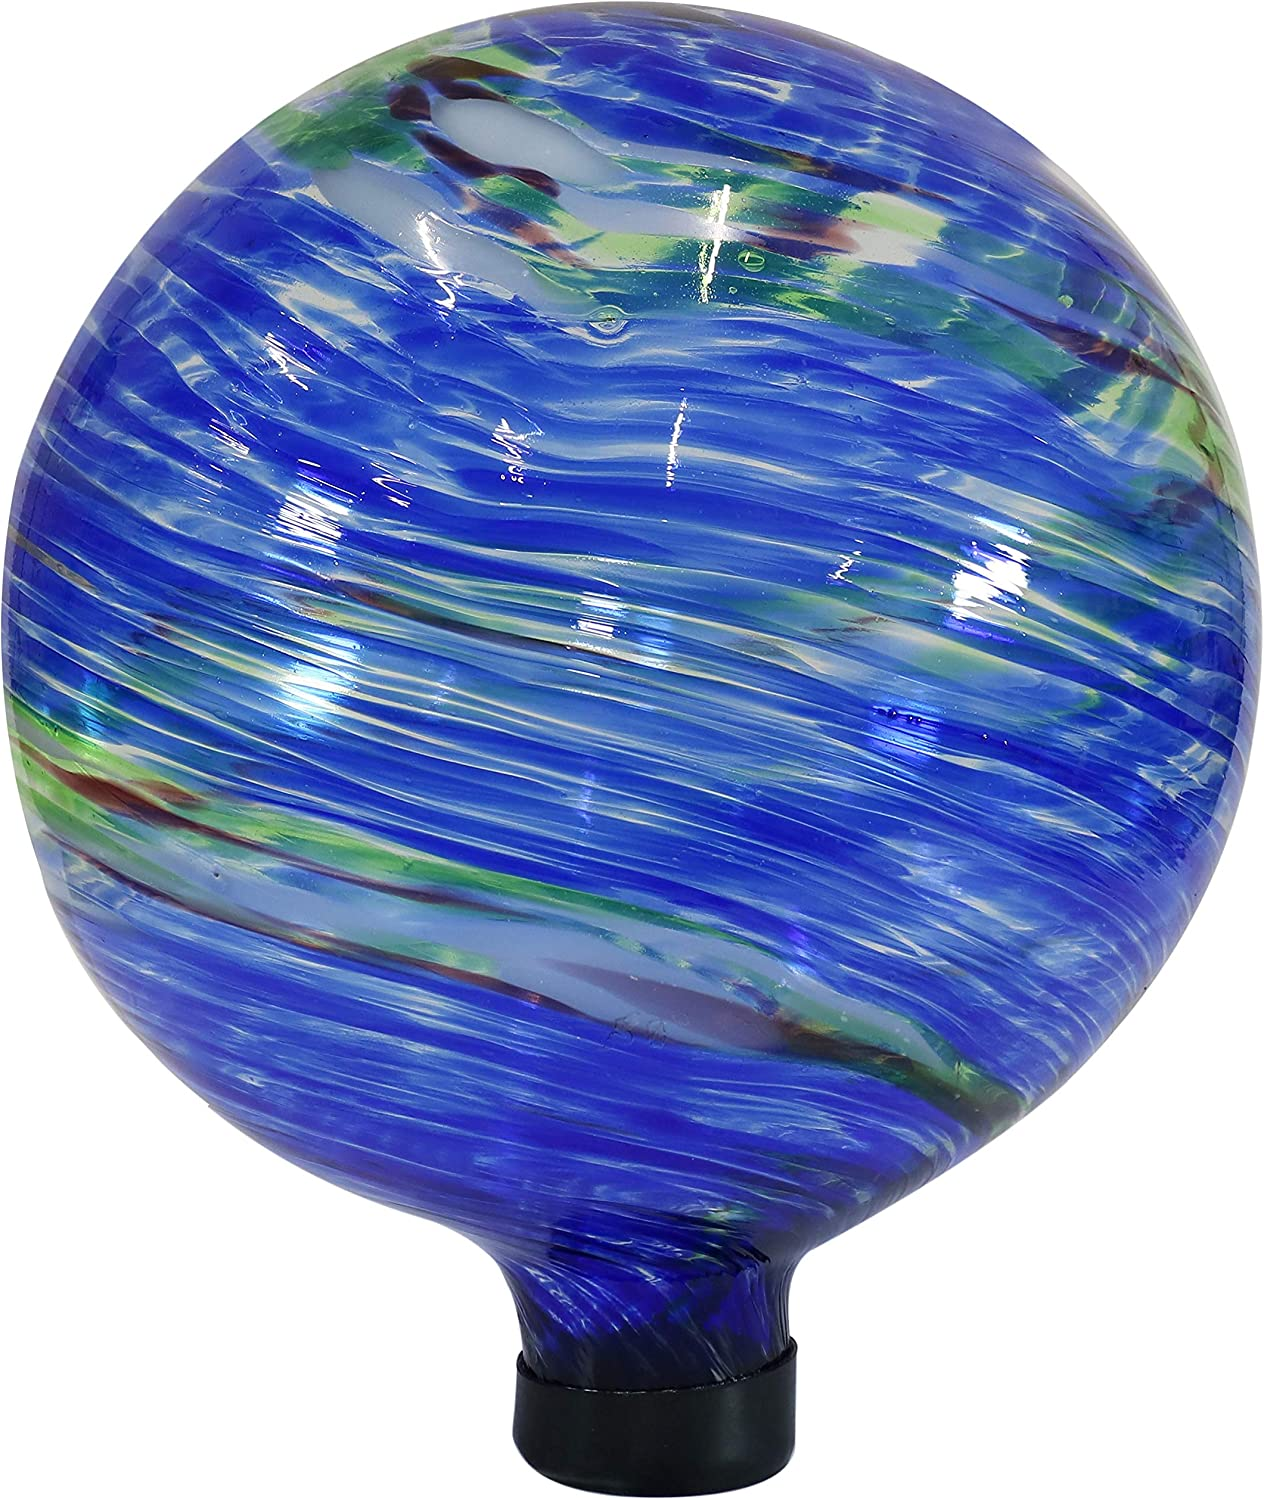 Sunnydaze Northern Lights Gazing Ball - Blue and Green Swirl Decorative Glass Garden Globe Sphere - Outdoor Patio, Lawn and Yard Orb Ornament - 10-Inch